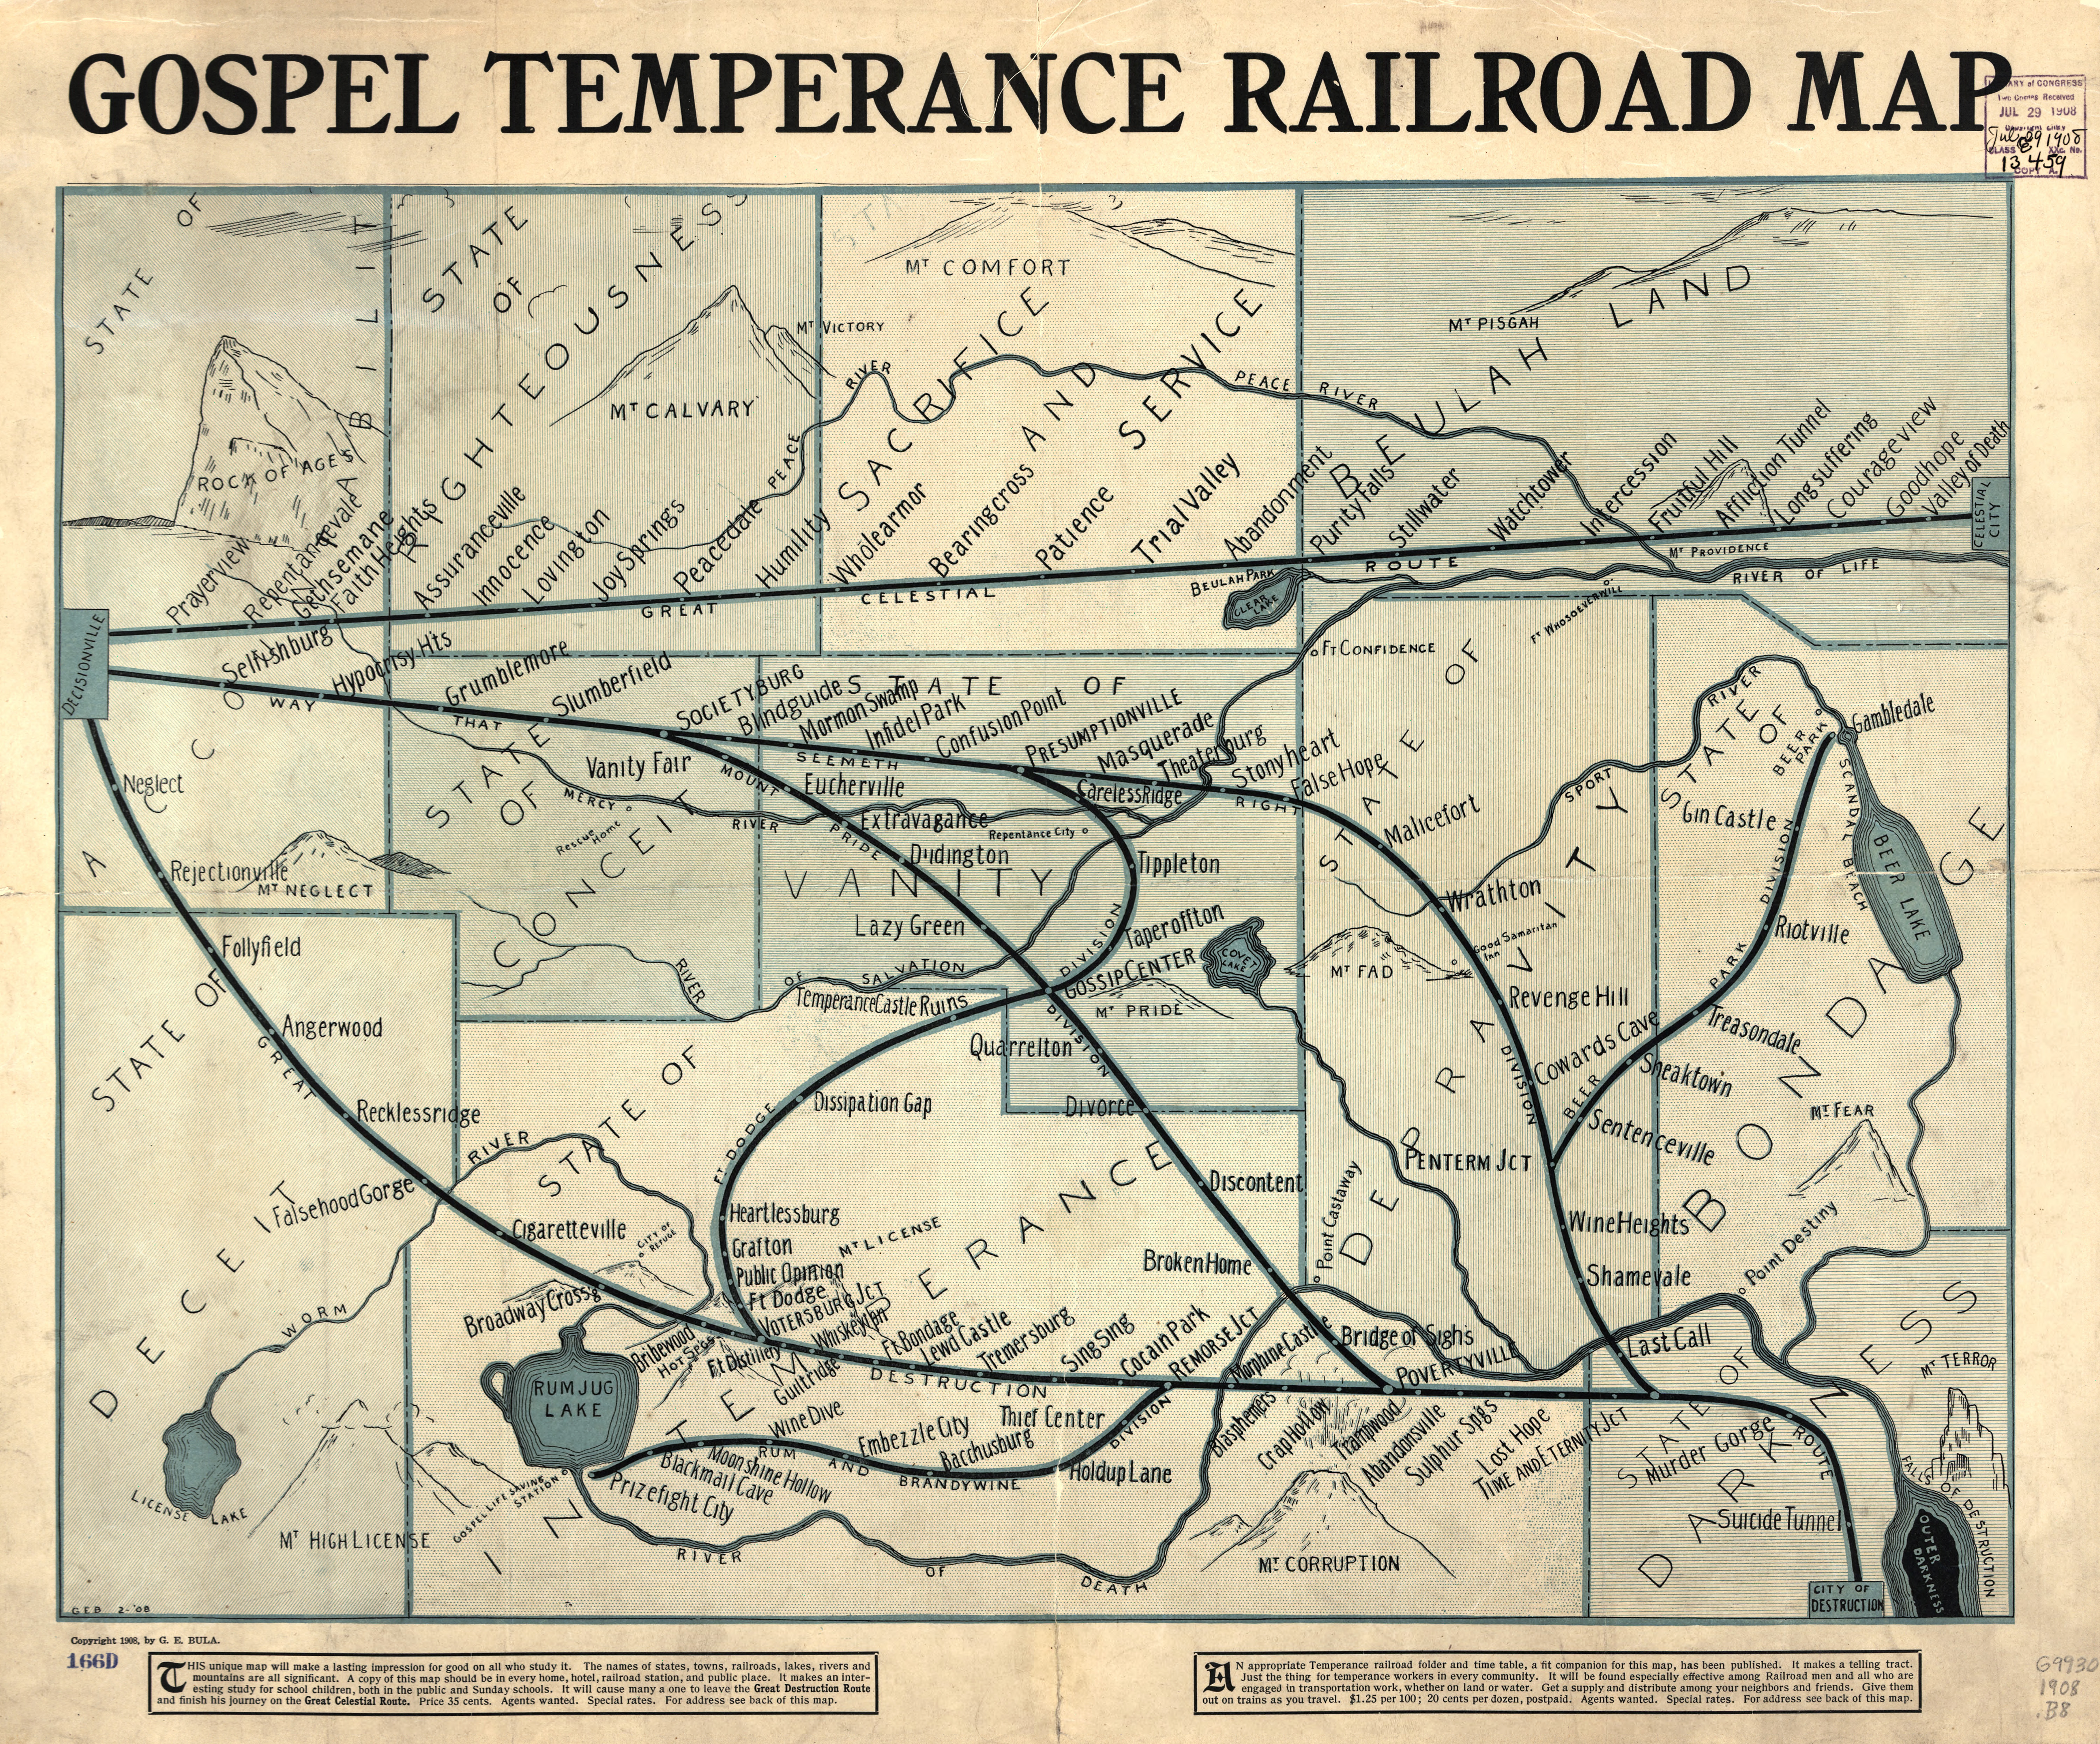 Vintage Infographic Gospel temperance Railroad map (1908)